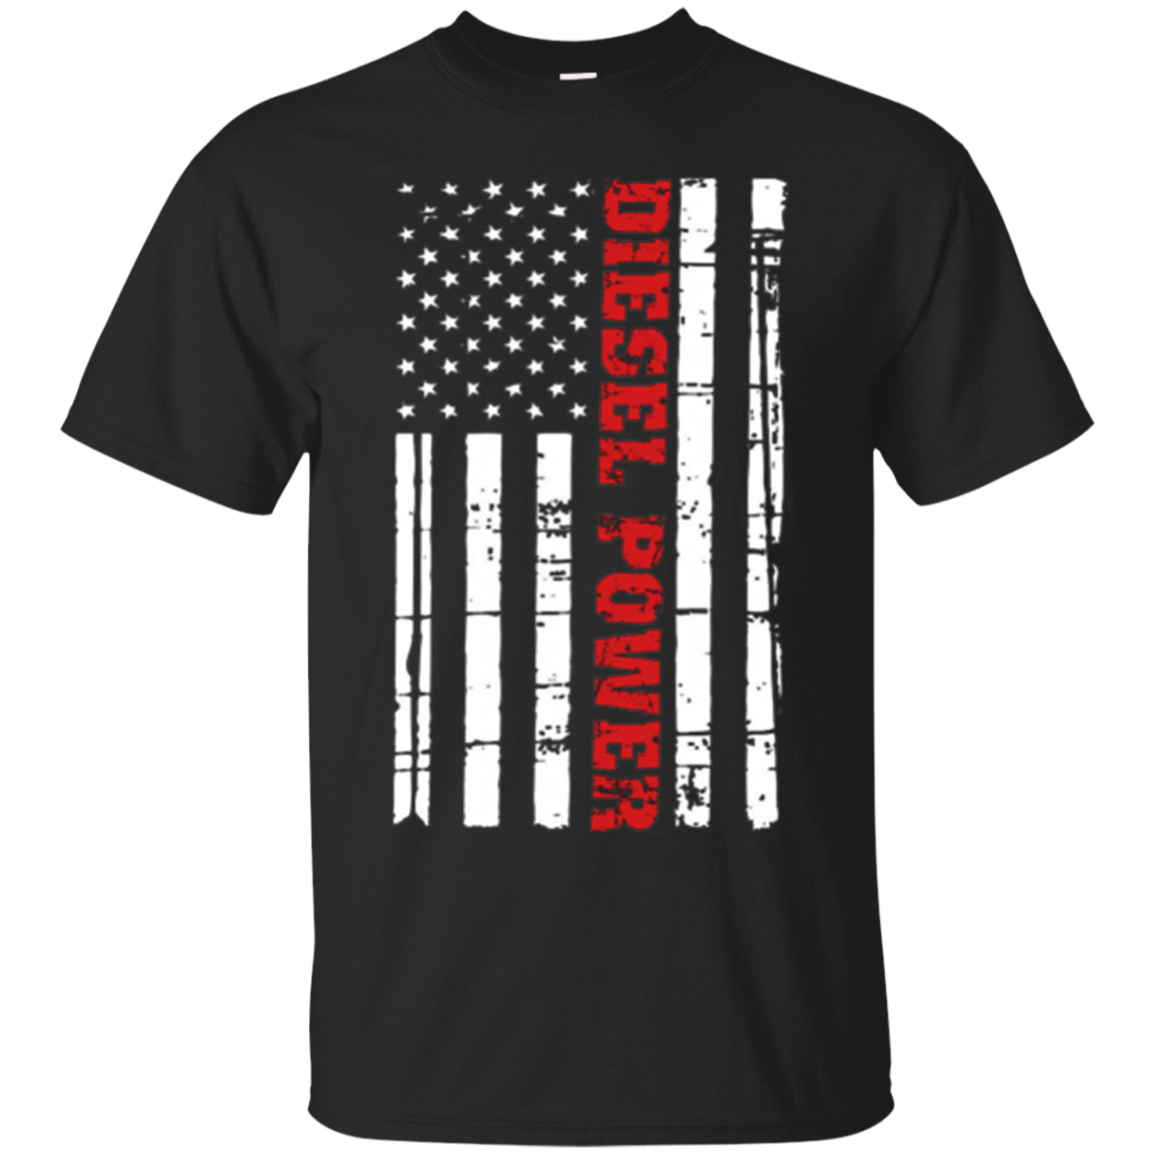 Diesel Power Flag T-Shirt Truck Turbo Brothers Mechanic